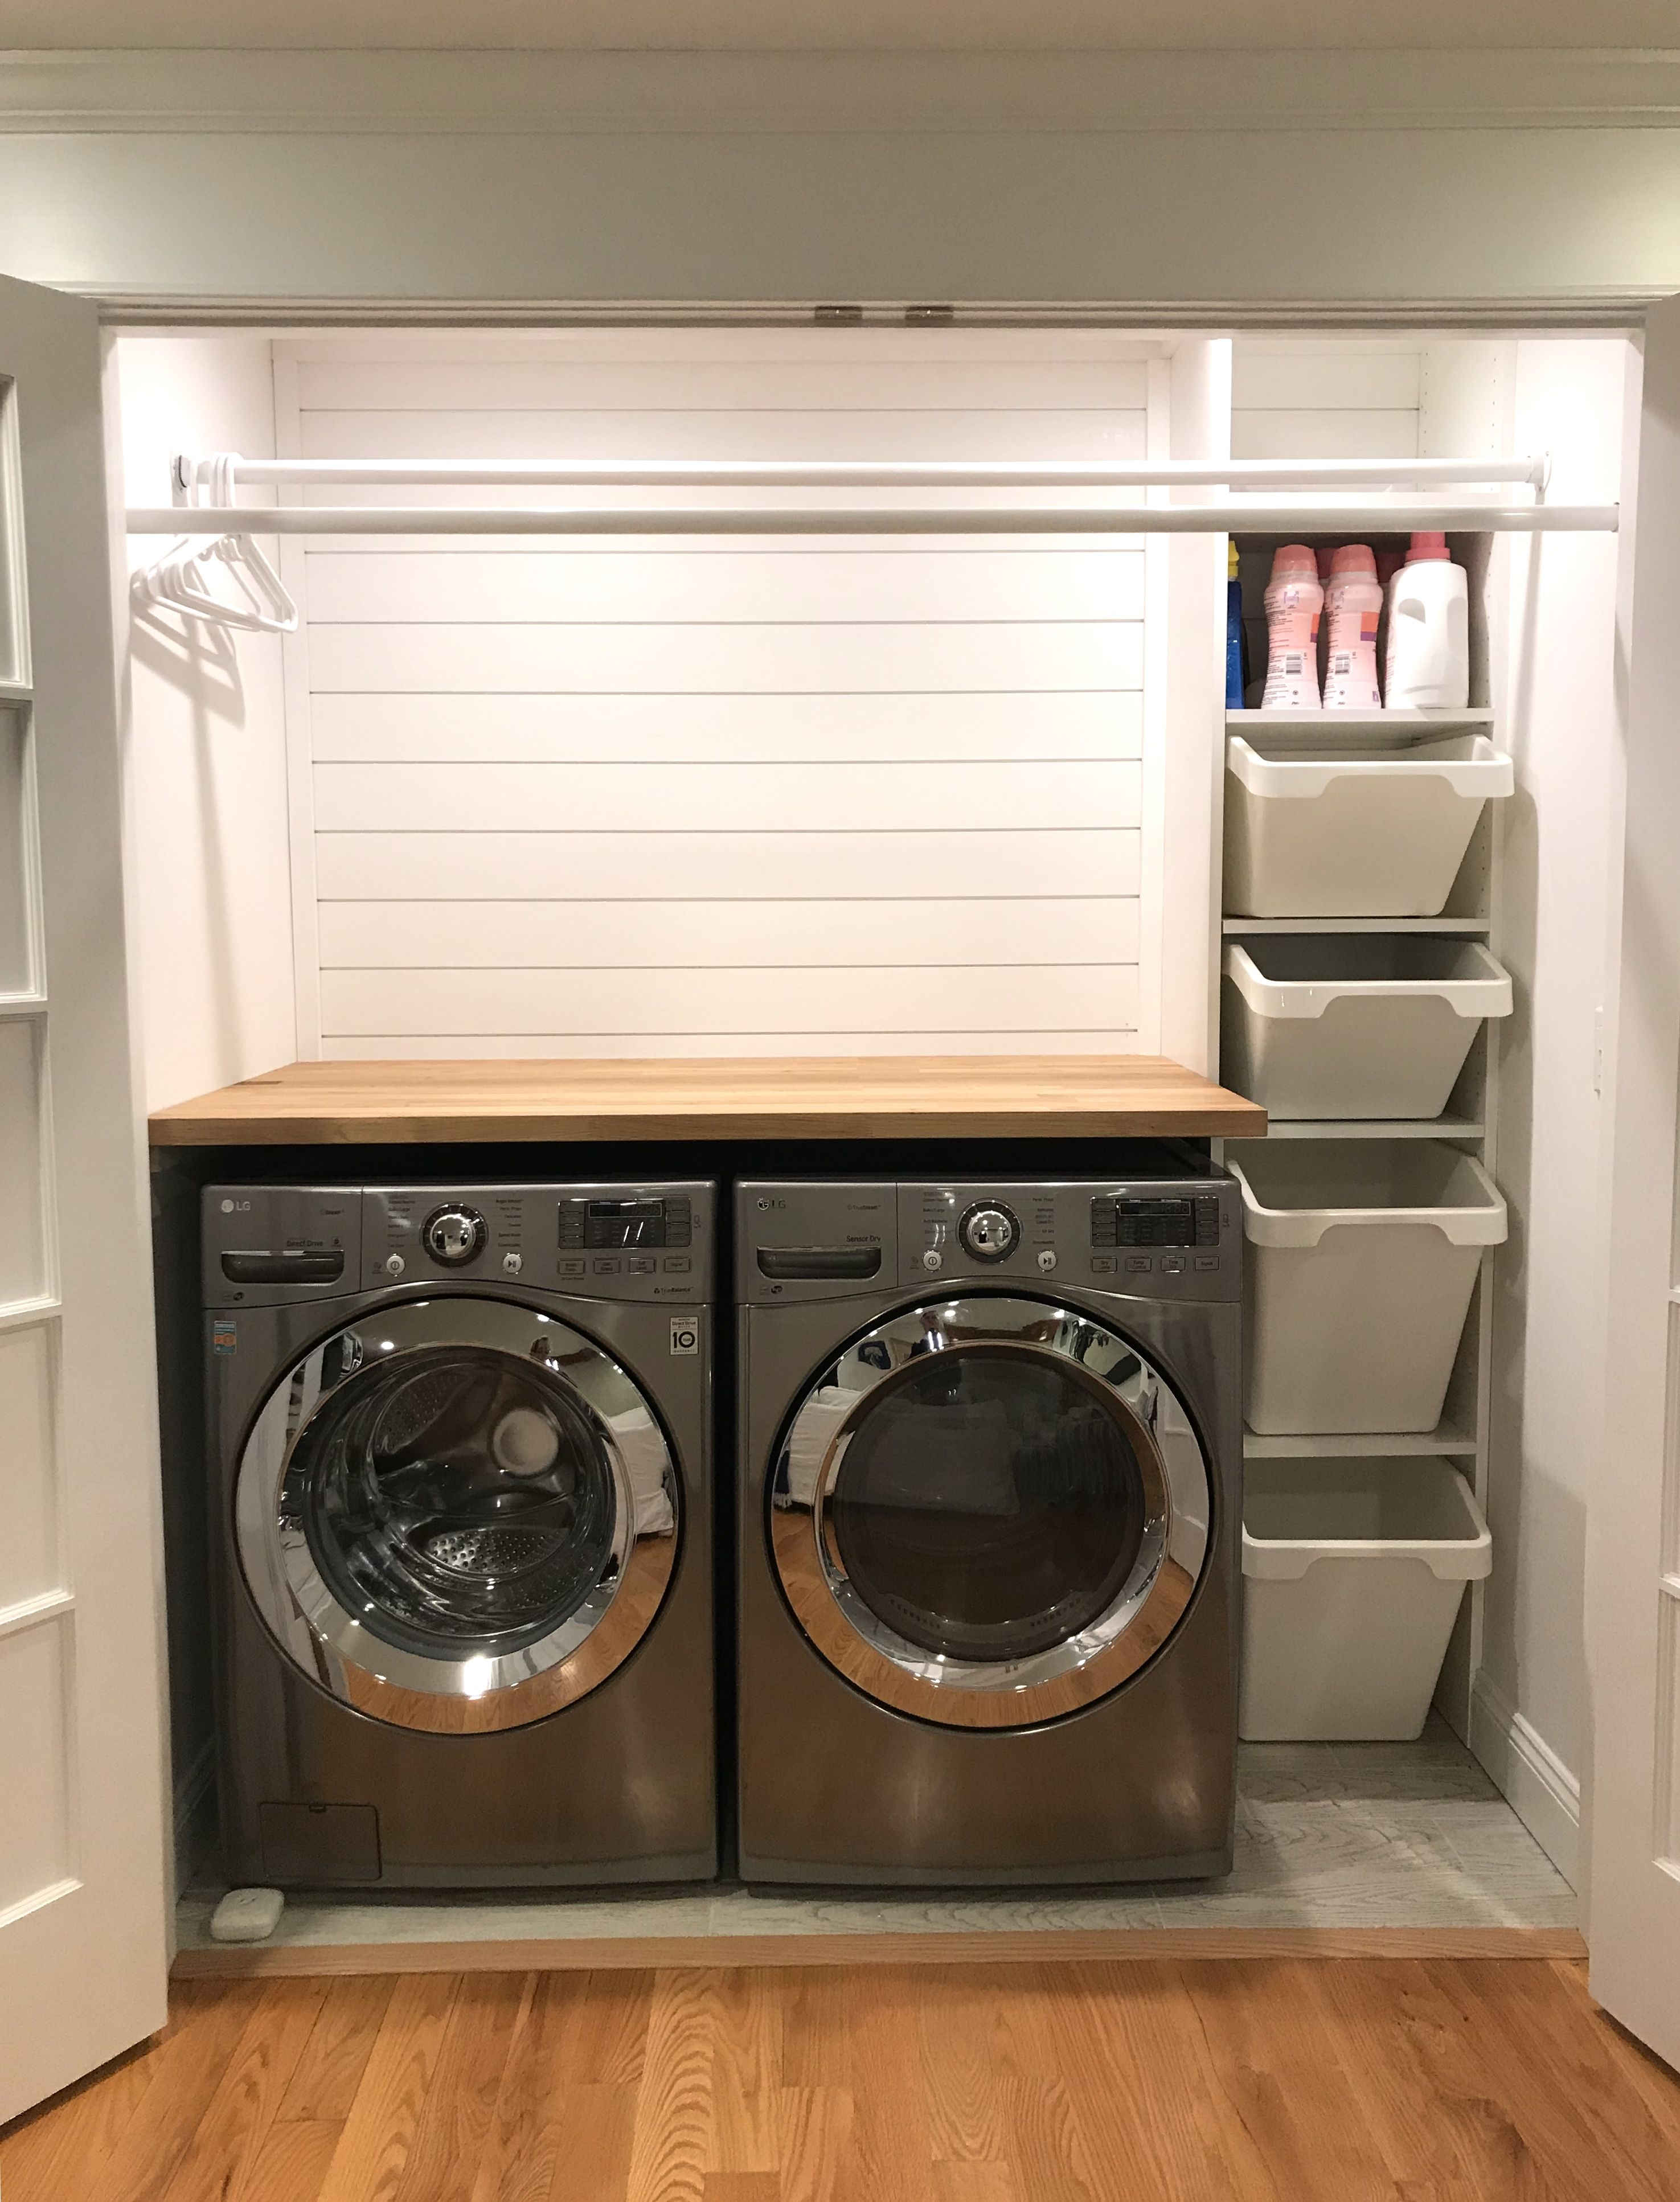 Laundry Room Zen For More Gorgeous Home Inspiration Follow